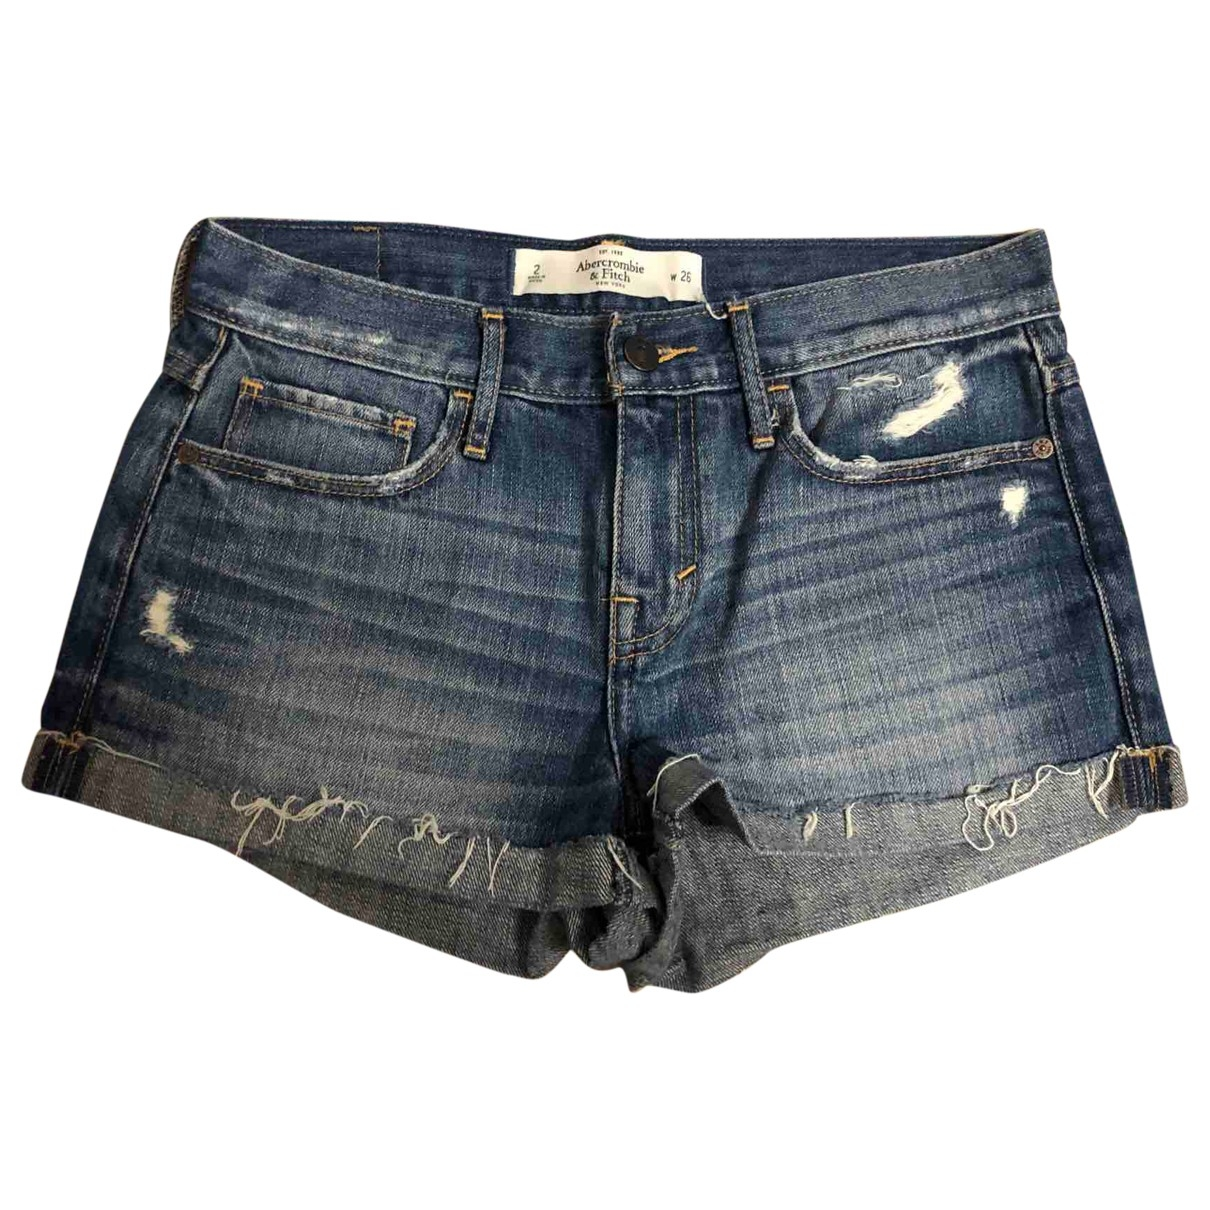 Short Abercrombie & Fitch